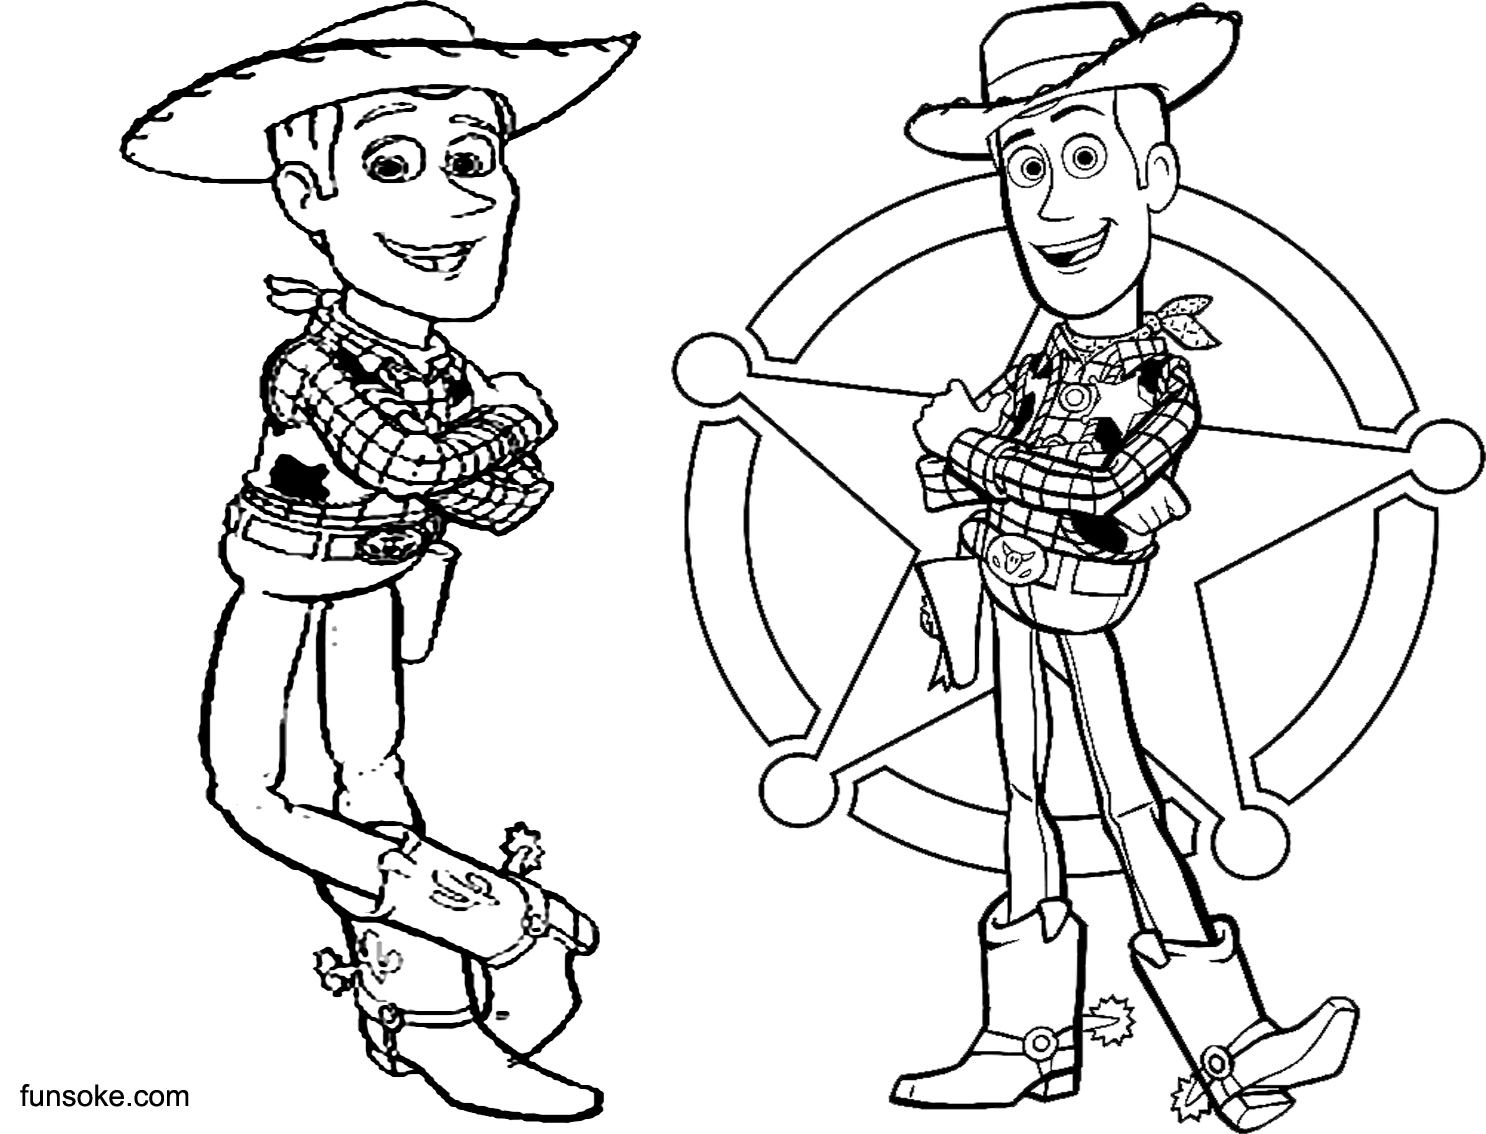 coloring pages of toy story toy story coloring pages coloring pages for kids coloring story pages of toy